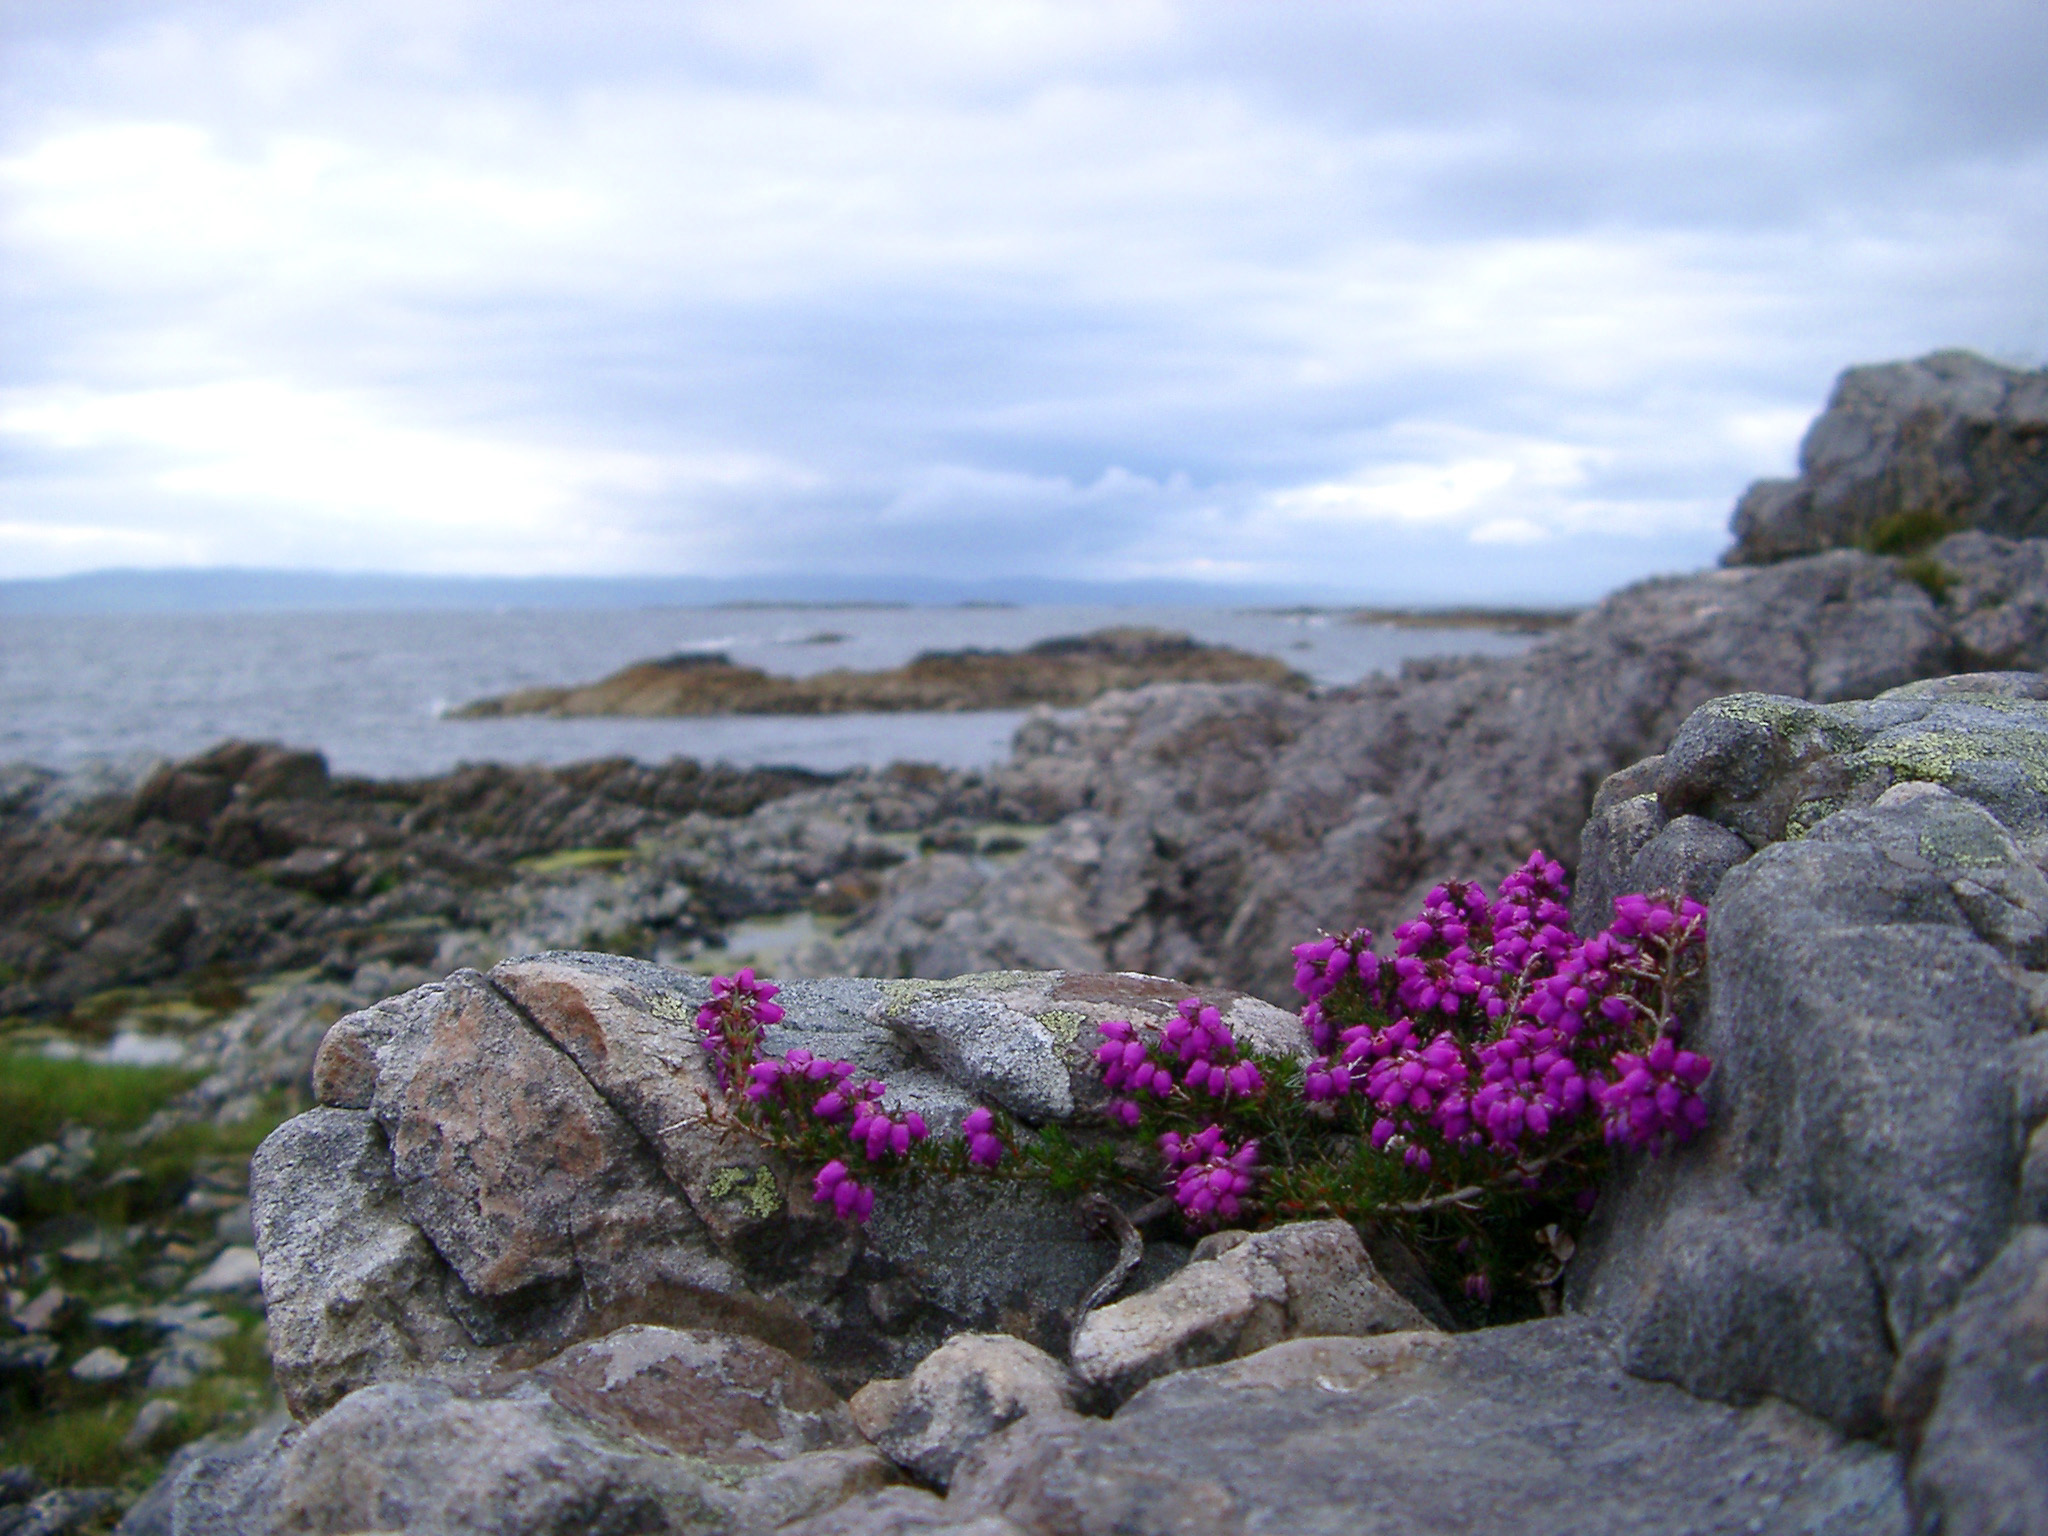 Pretty purple flowering heather growing on a rocky coastal headland with a view down to the ocean and coastline